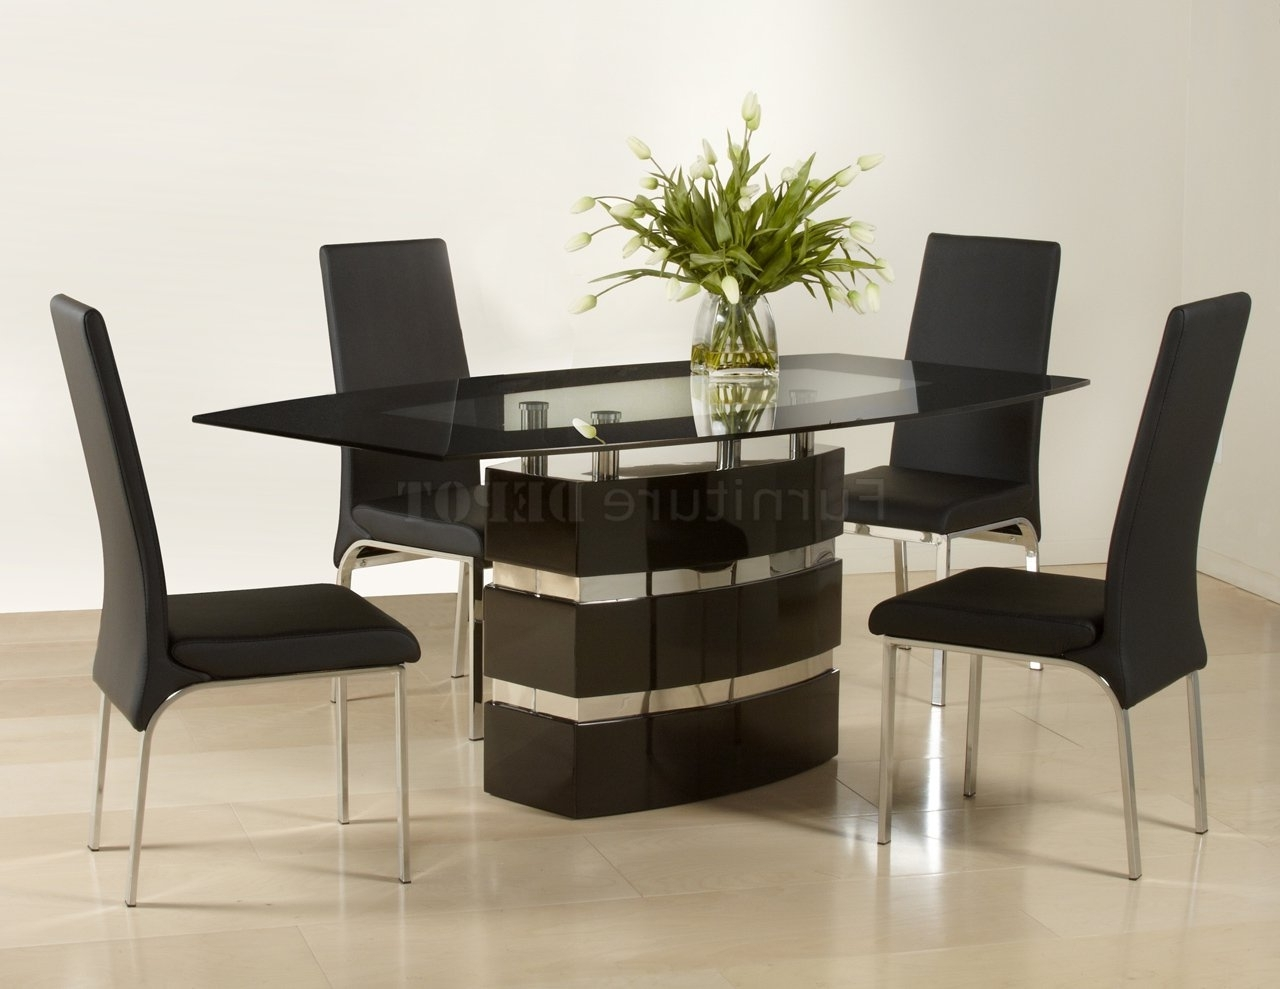 Modern Dining Room Sets In Current Photos: Black High Gloss Finish Modern Dining Table Woptional Chairs (View 13 of 25)